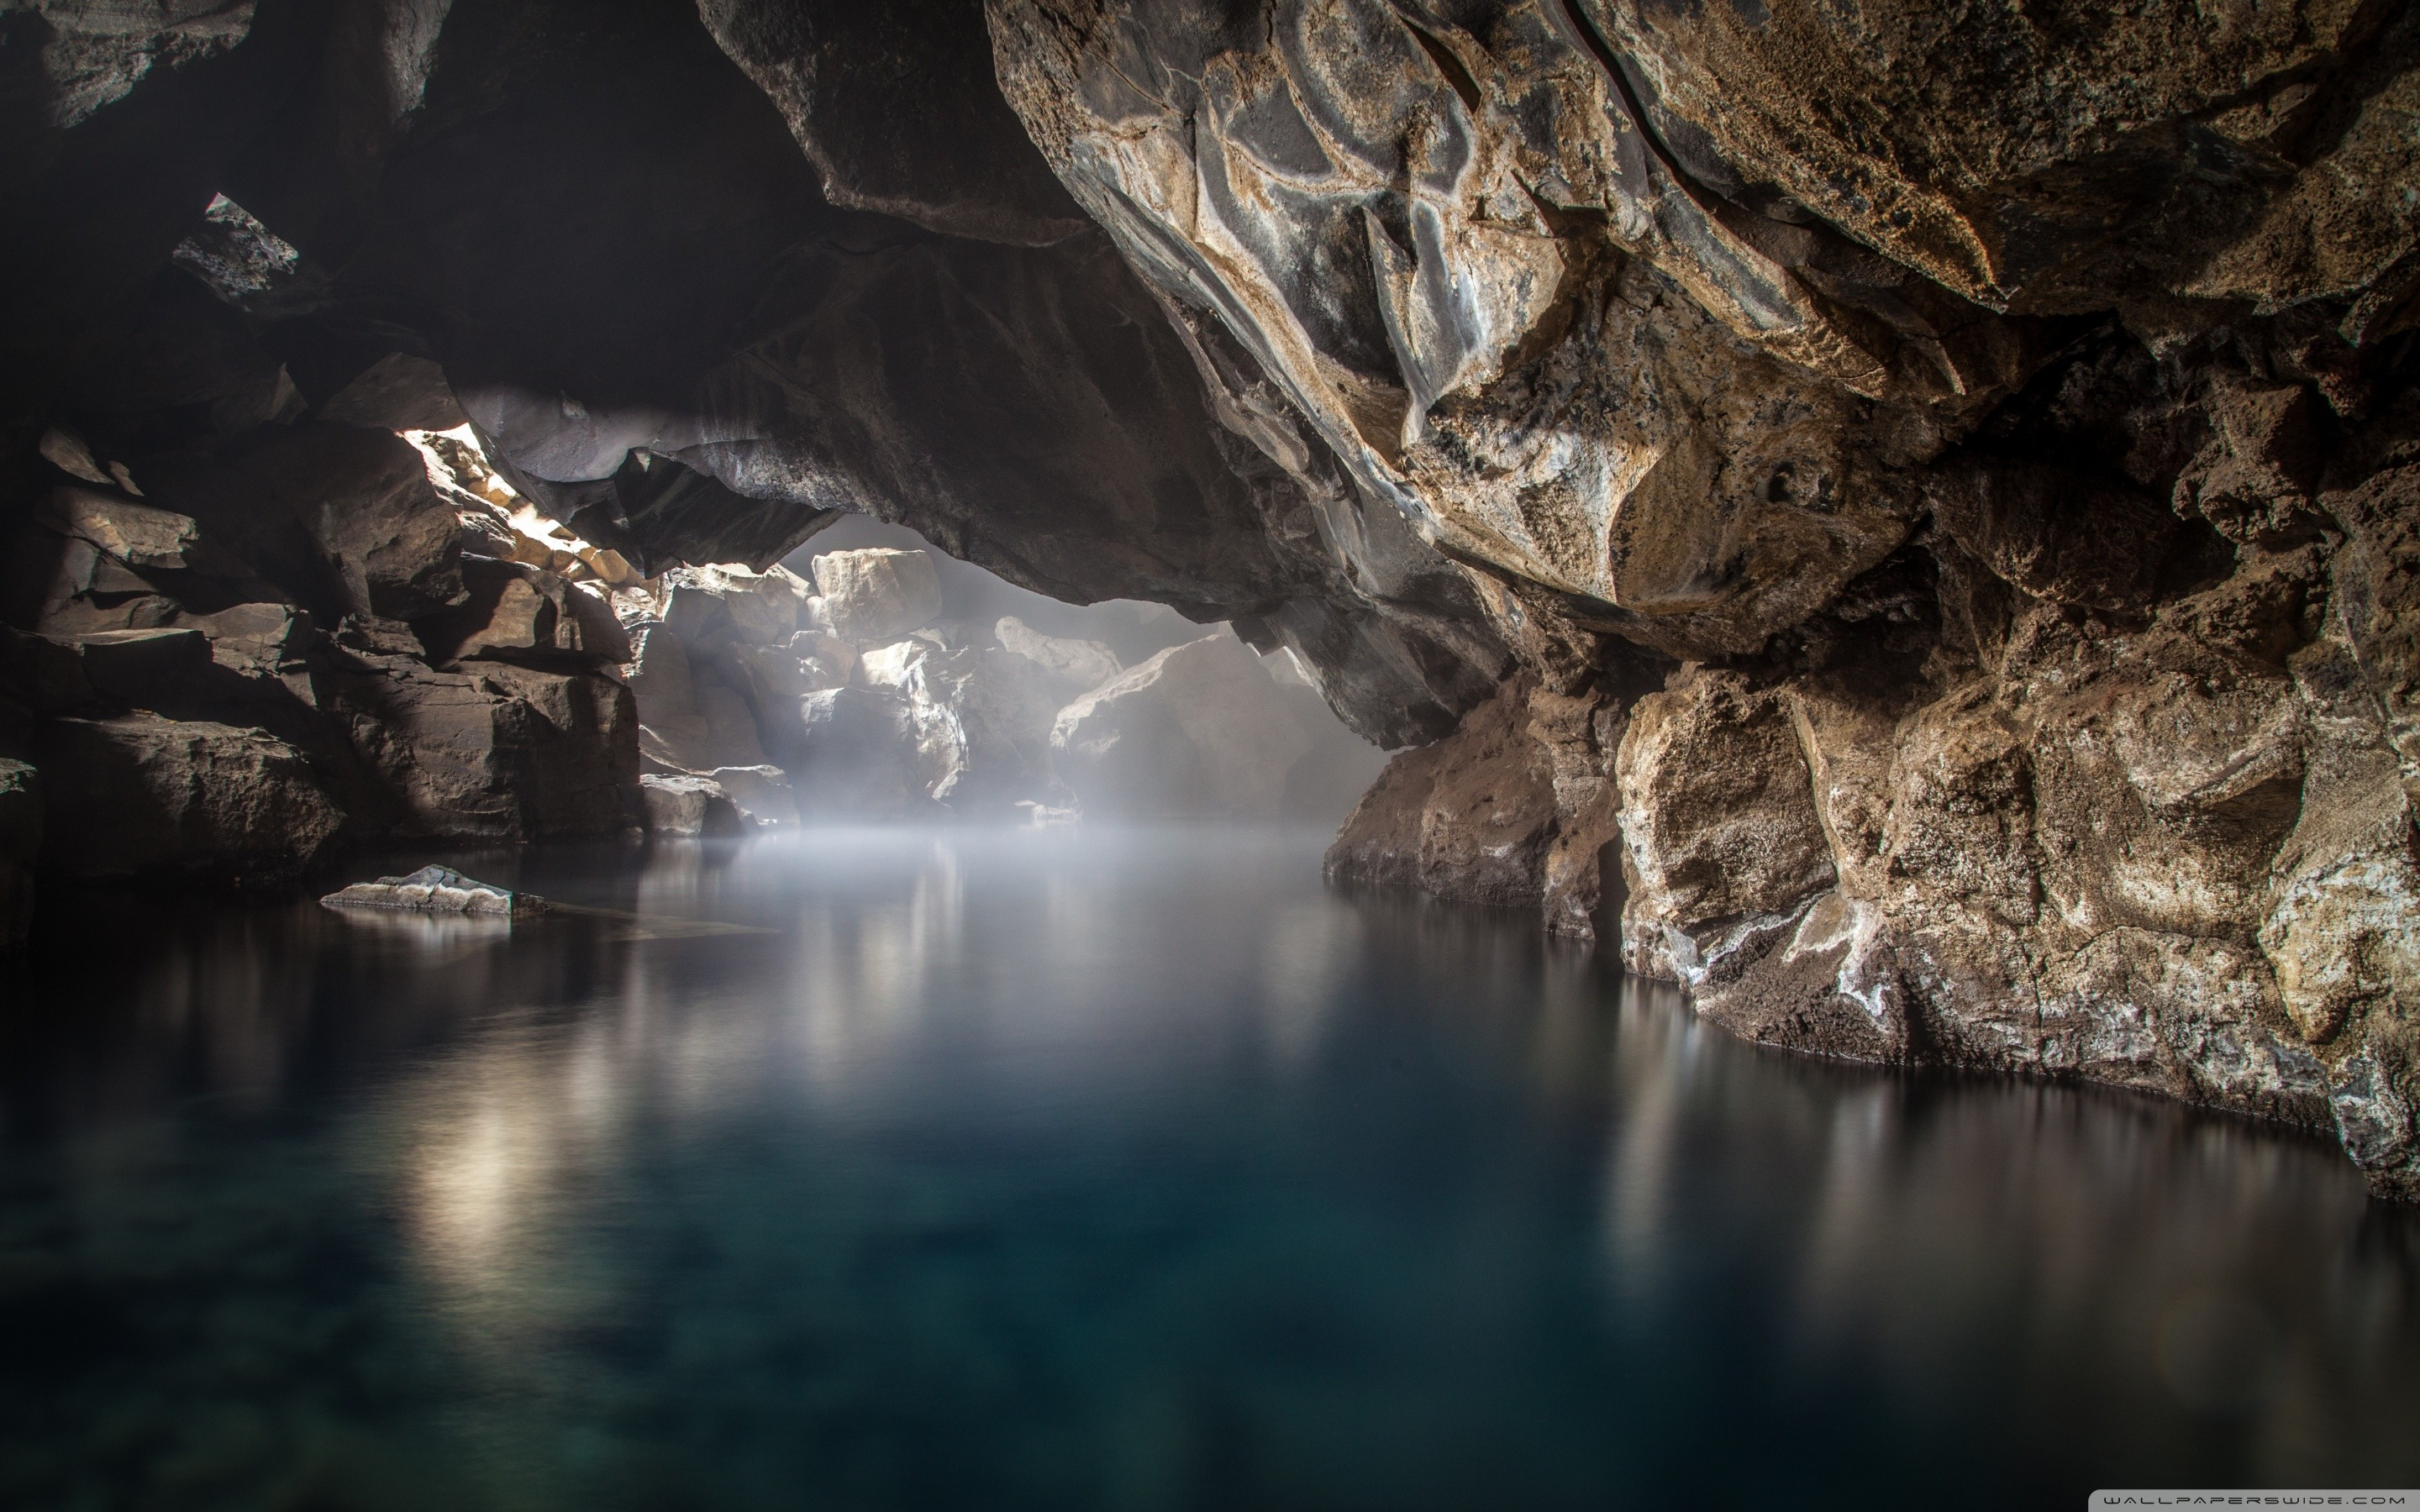 2880x1800 ... grjotagja cave thermal spring iceland hd desktop wallpaper ...